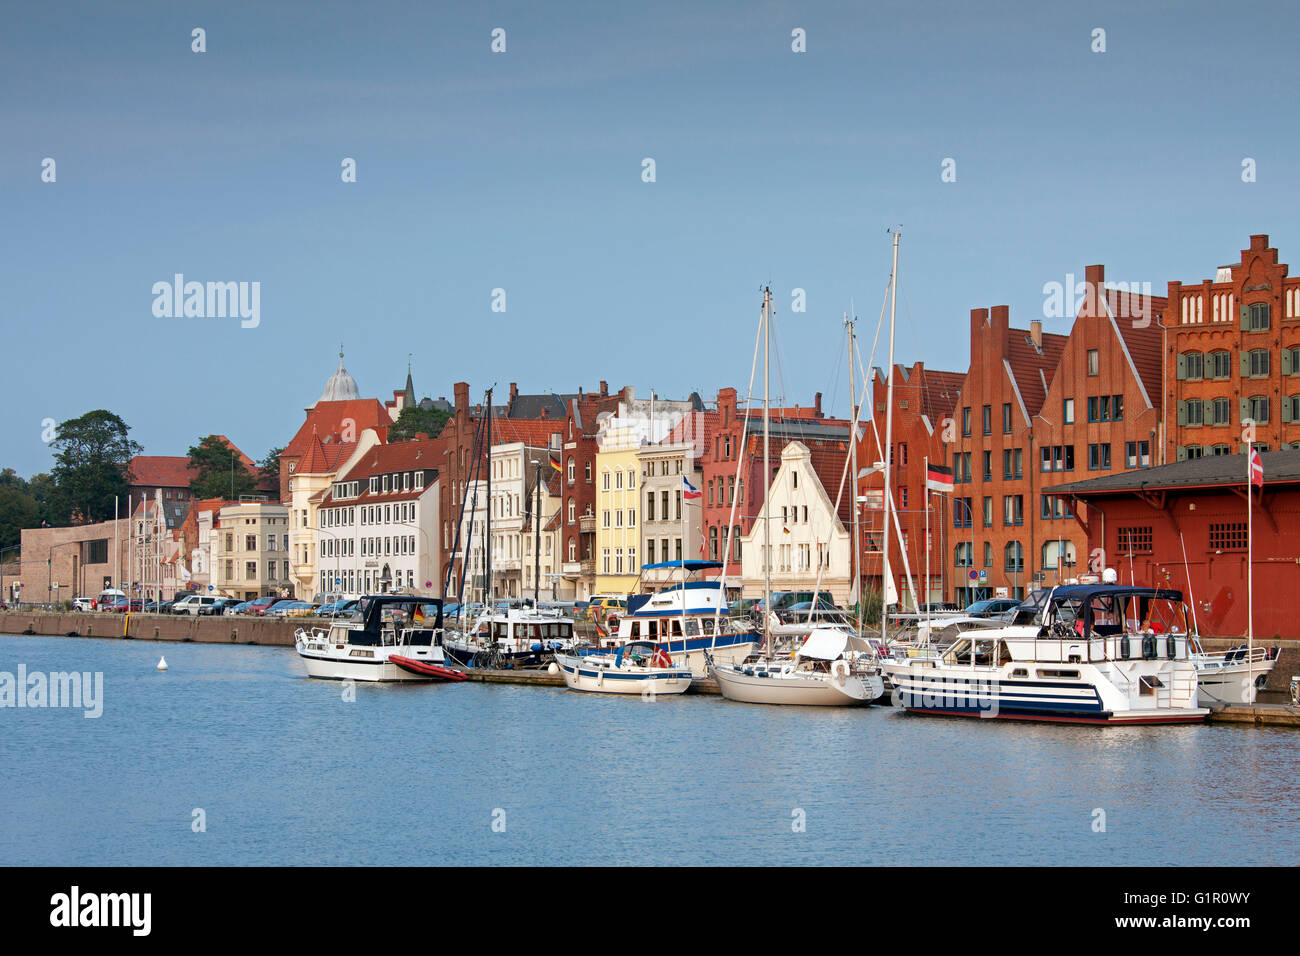 Historic houses along the river Trave, Hanseatic town Lübeck, Schleswig-Holstein, Germany - Stock Image